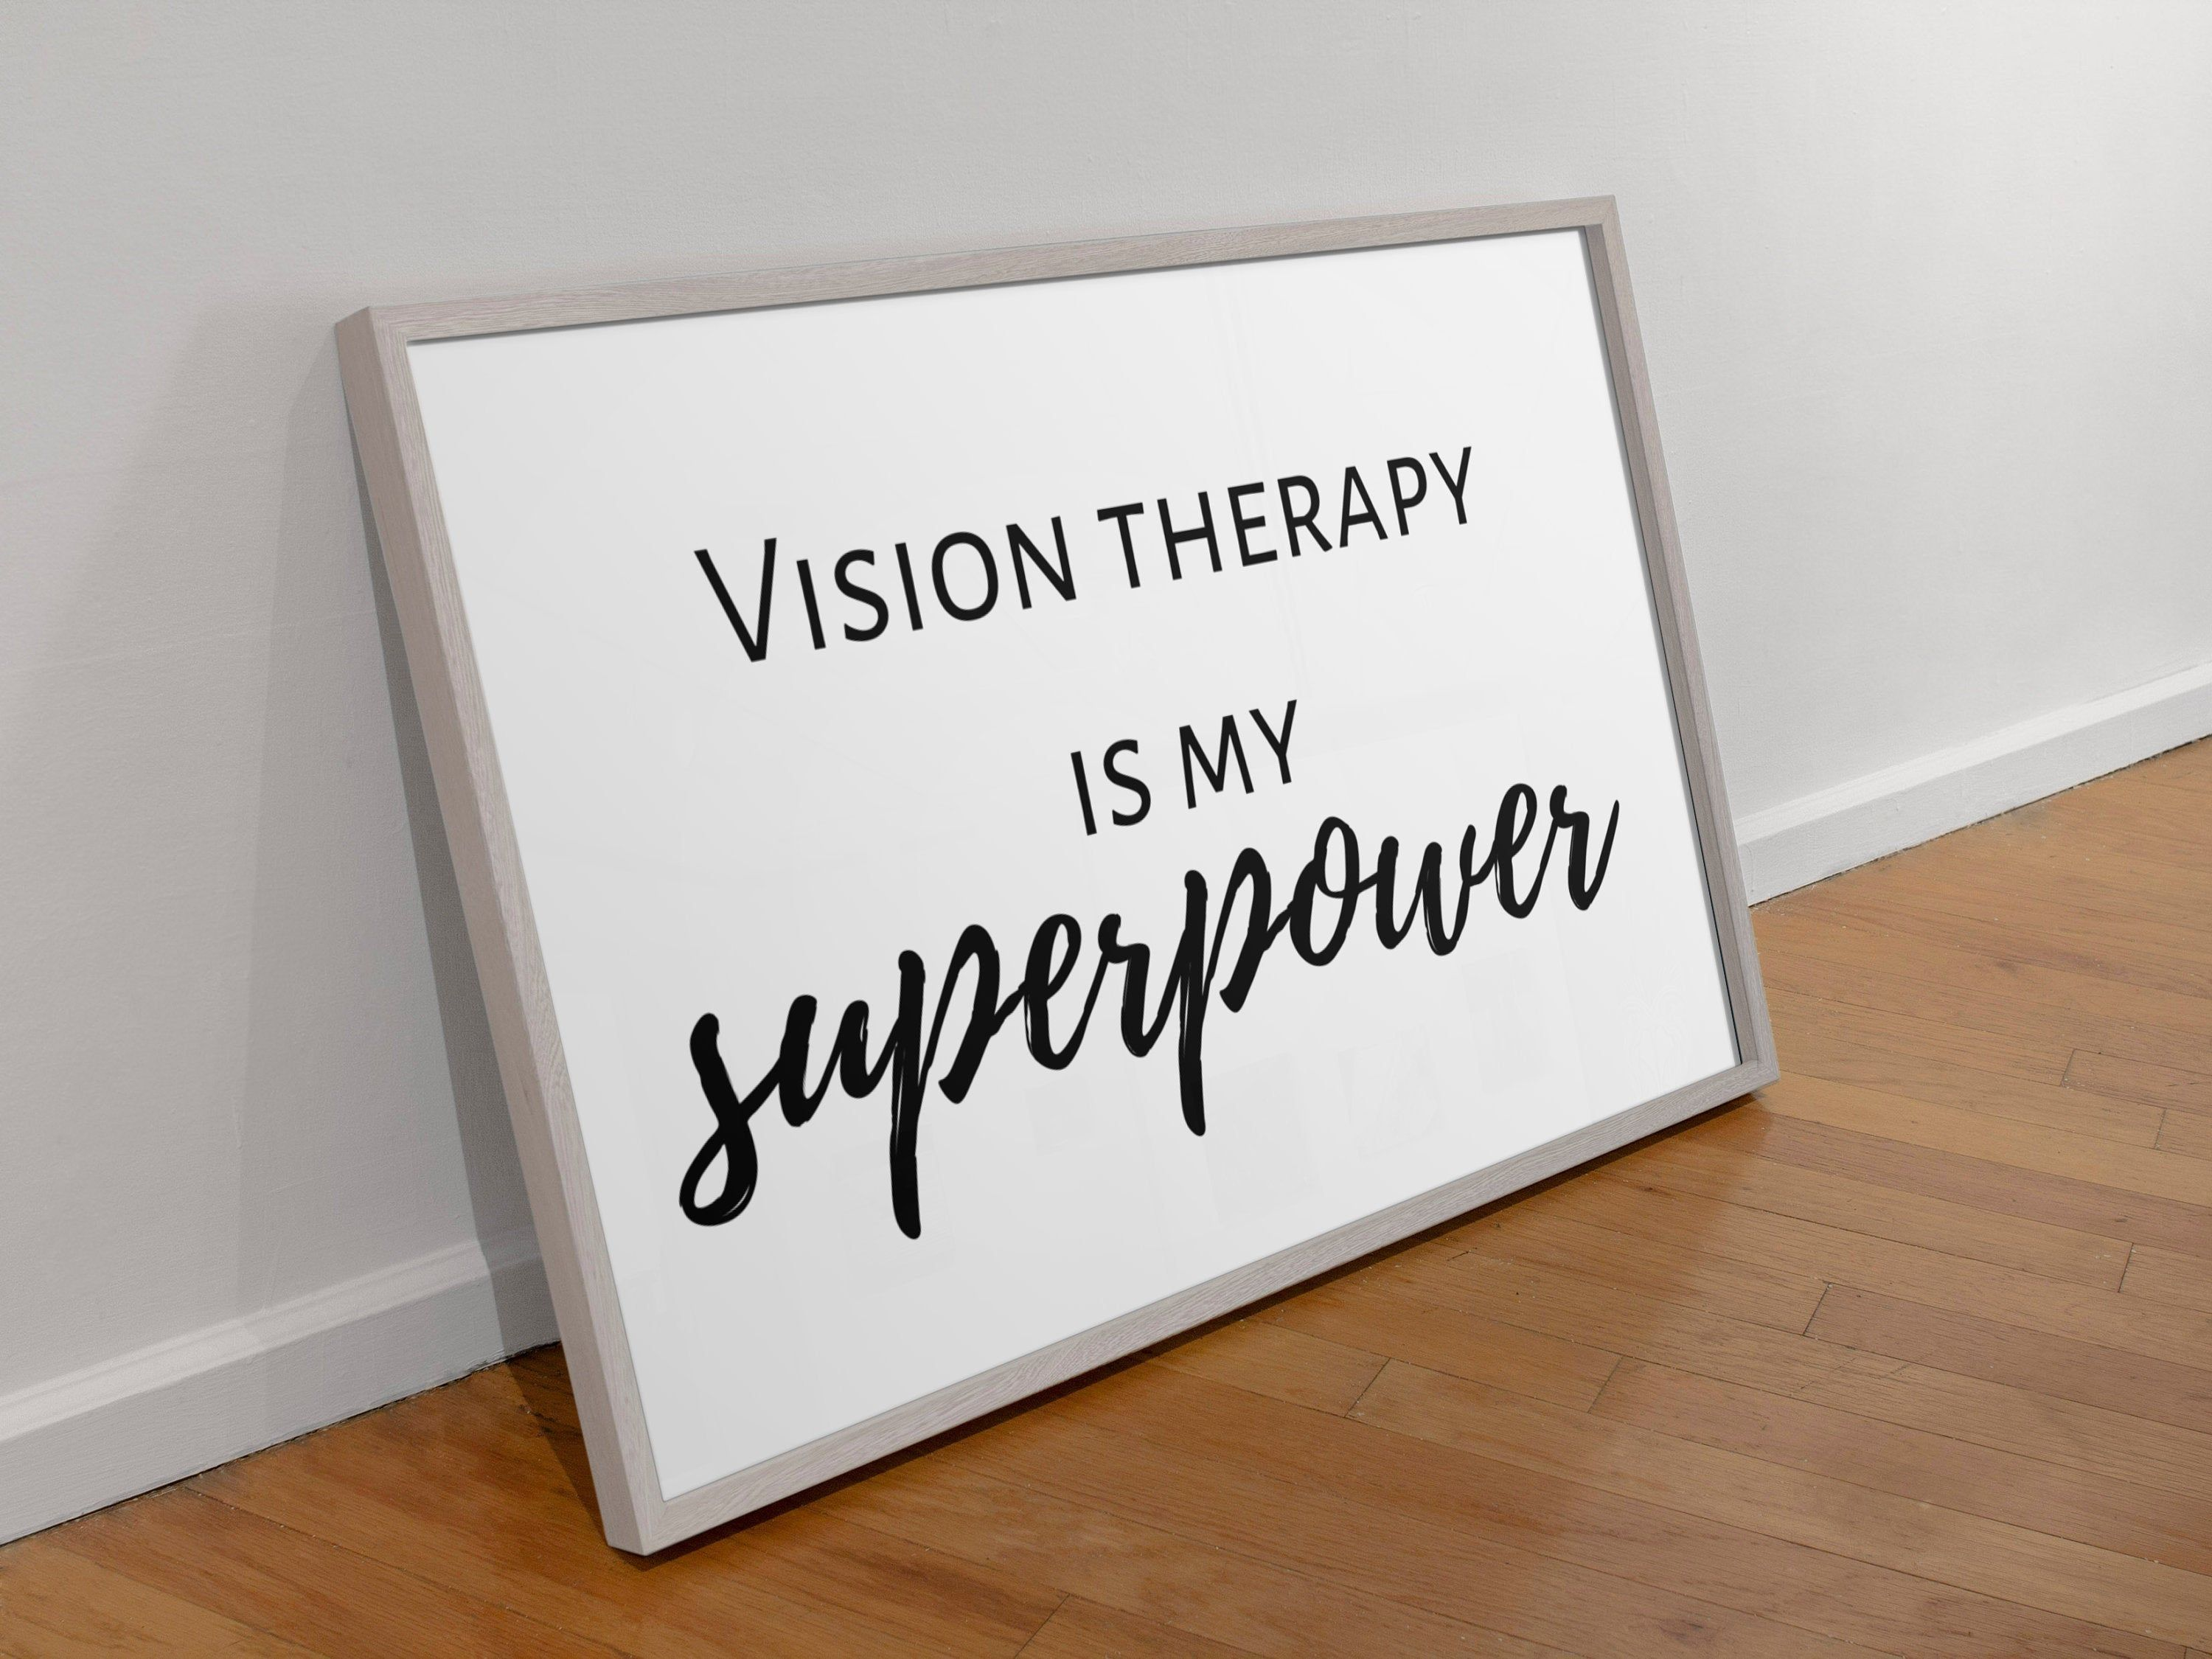 Vision Therapist T Vision Therapy Is My Superpower